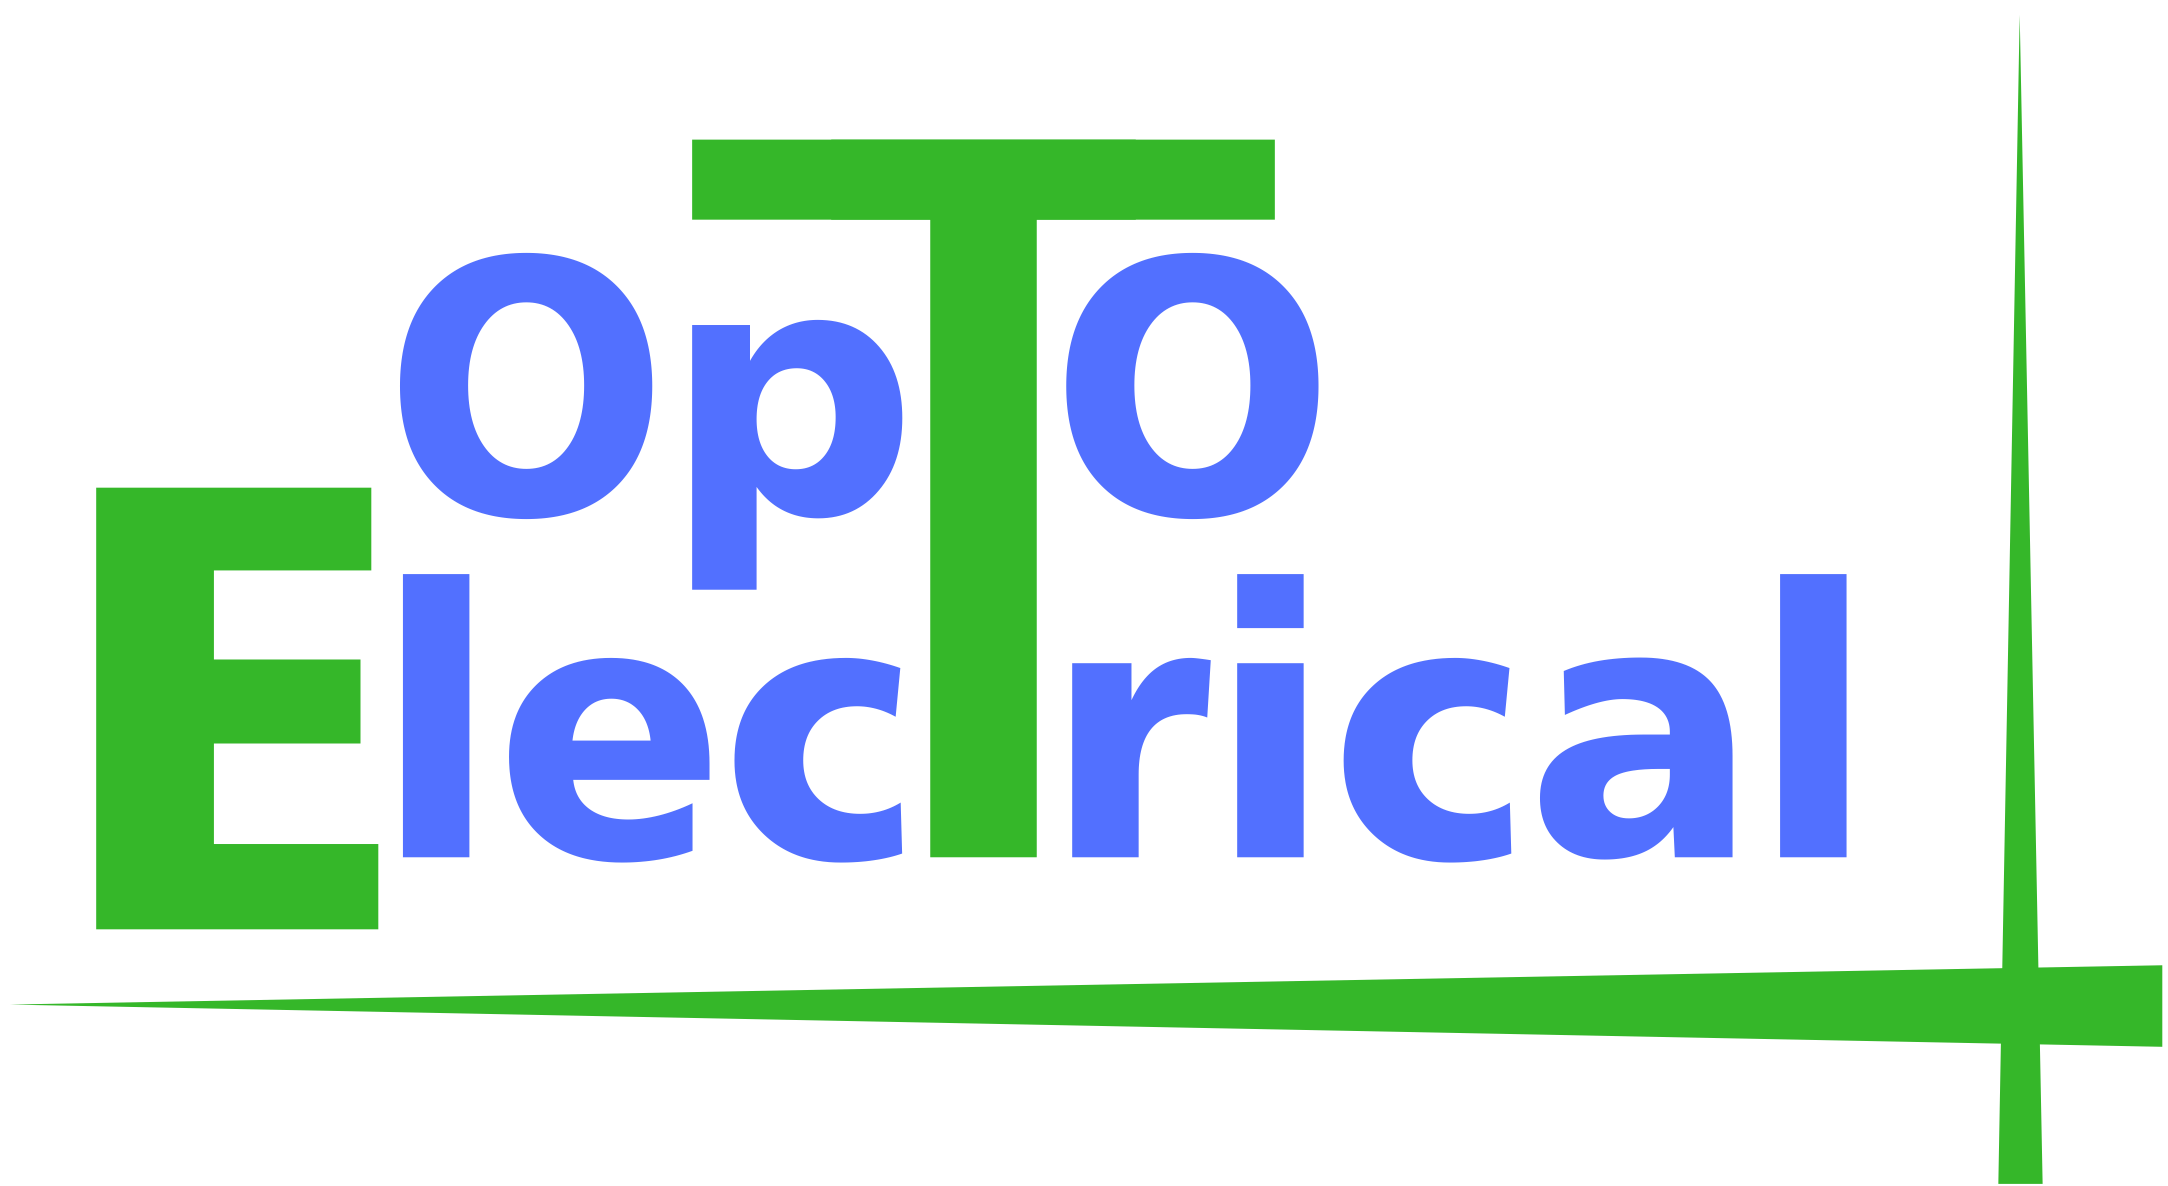 Opto Electrical